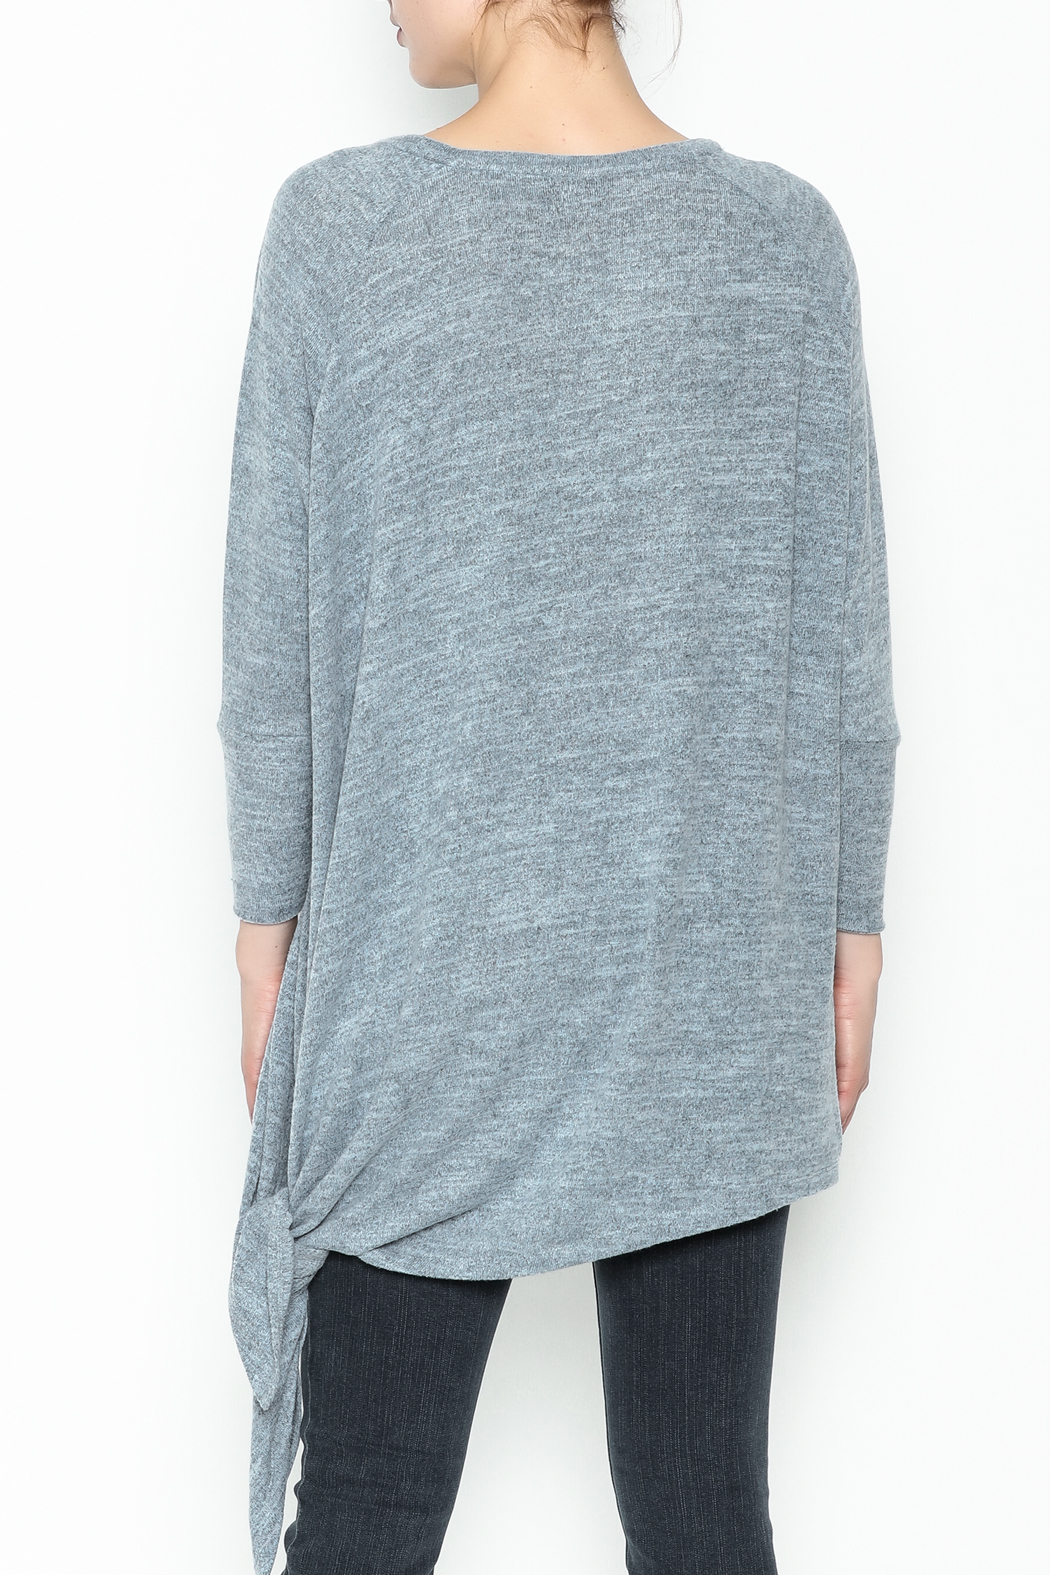 Coco + Carmen Assymetrical Tunic Top - Back Cropped Image